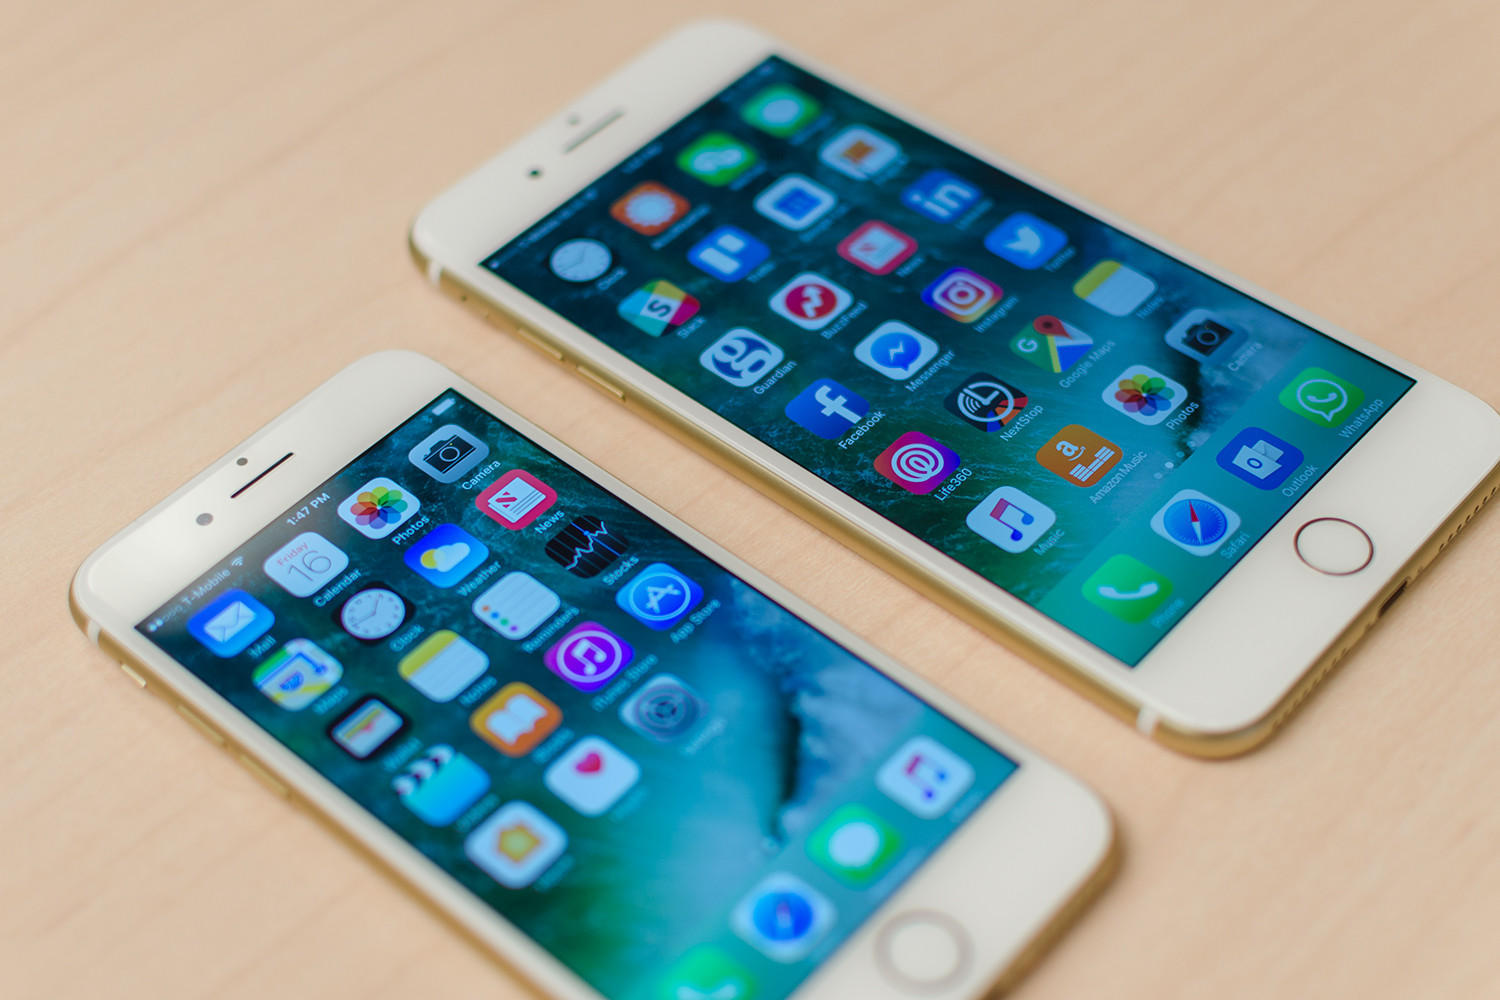 apple-iphone-7-iphone-7-plus-review-9-1500x1000-1